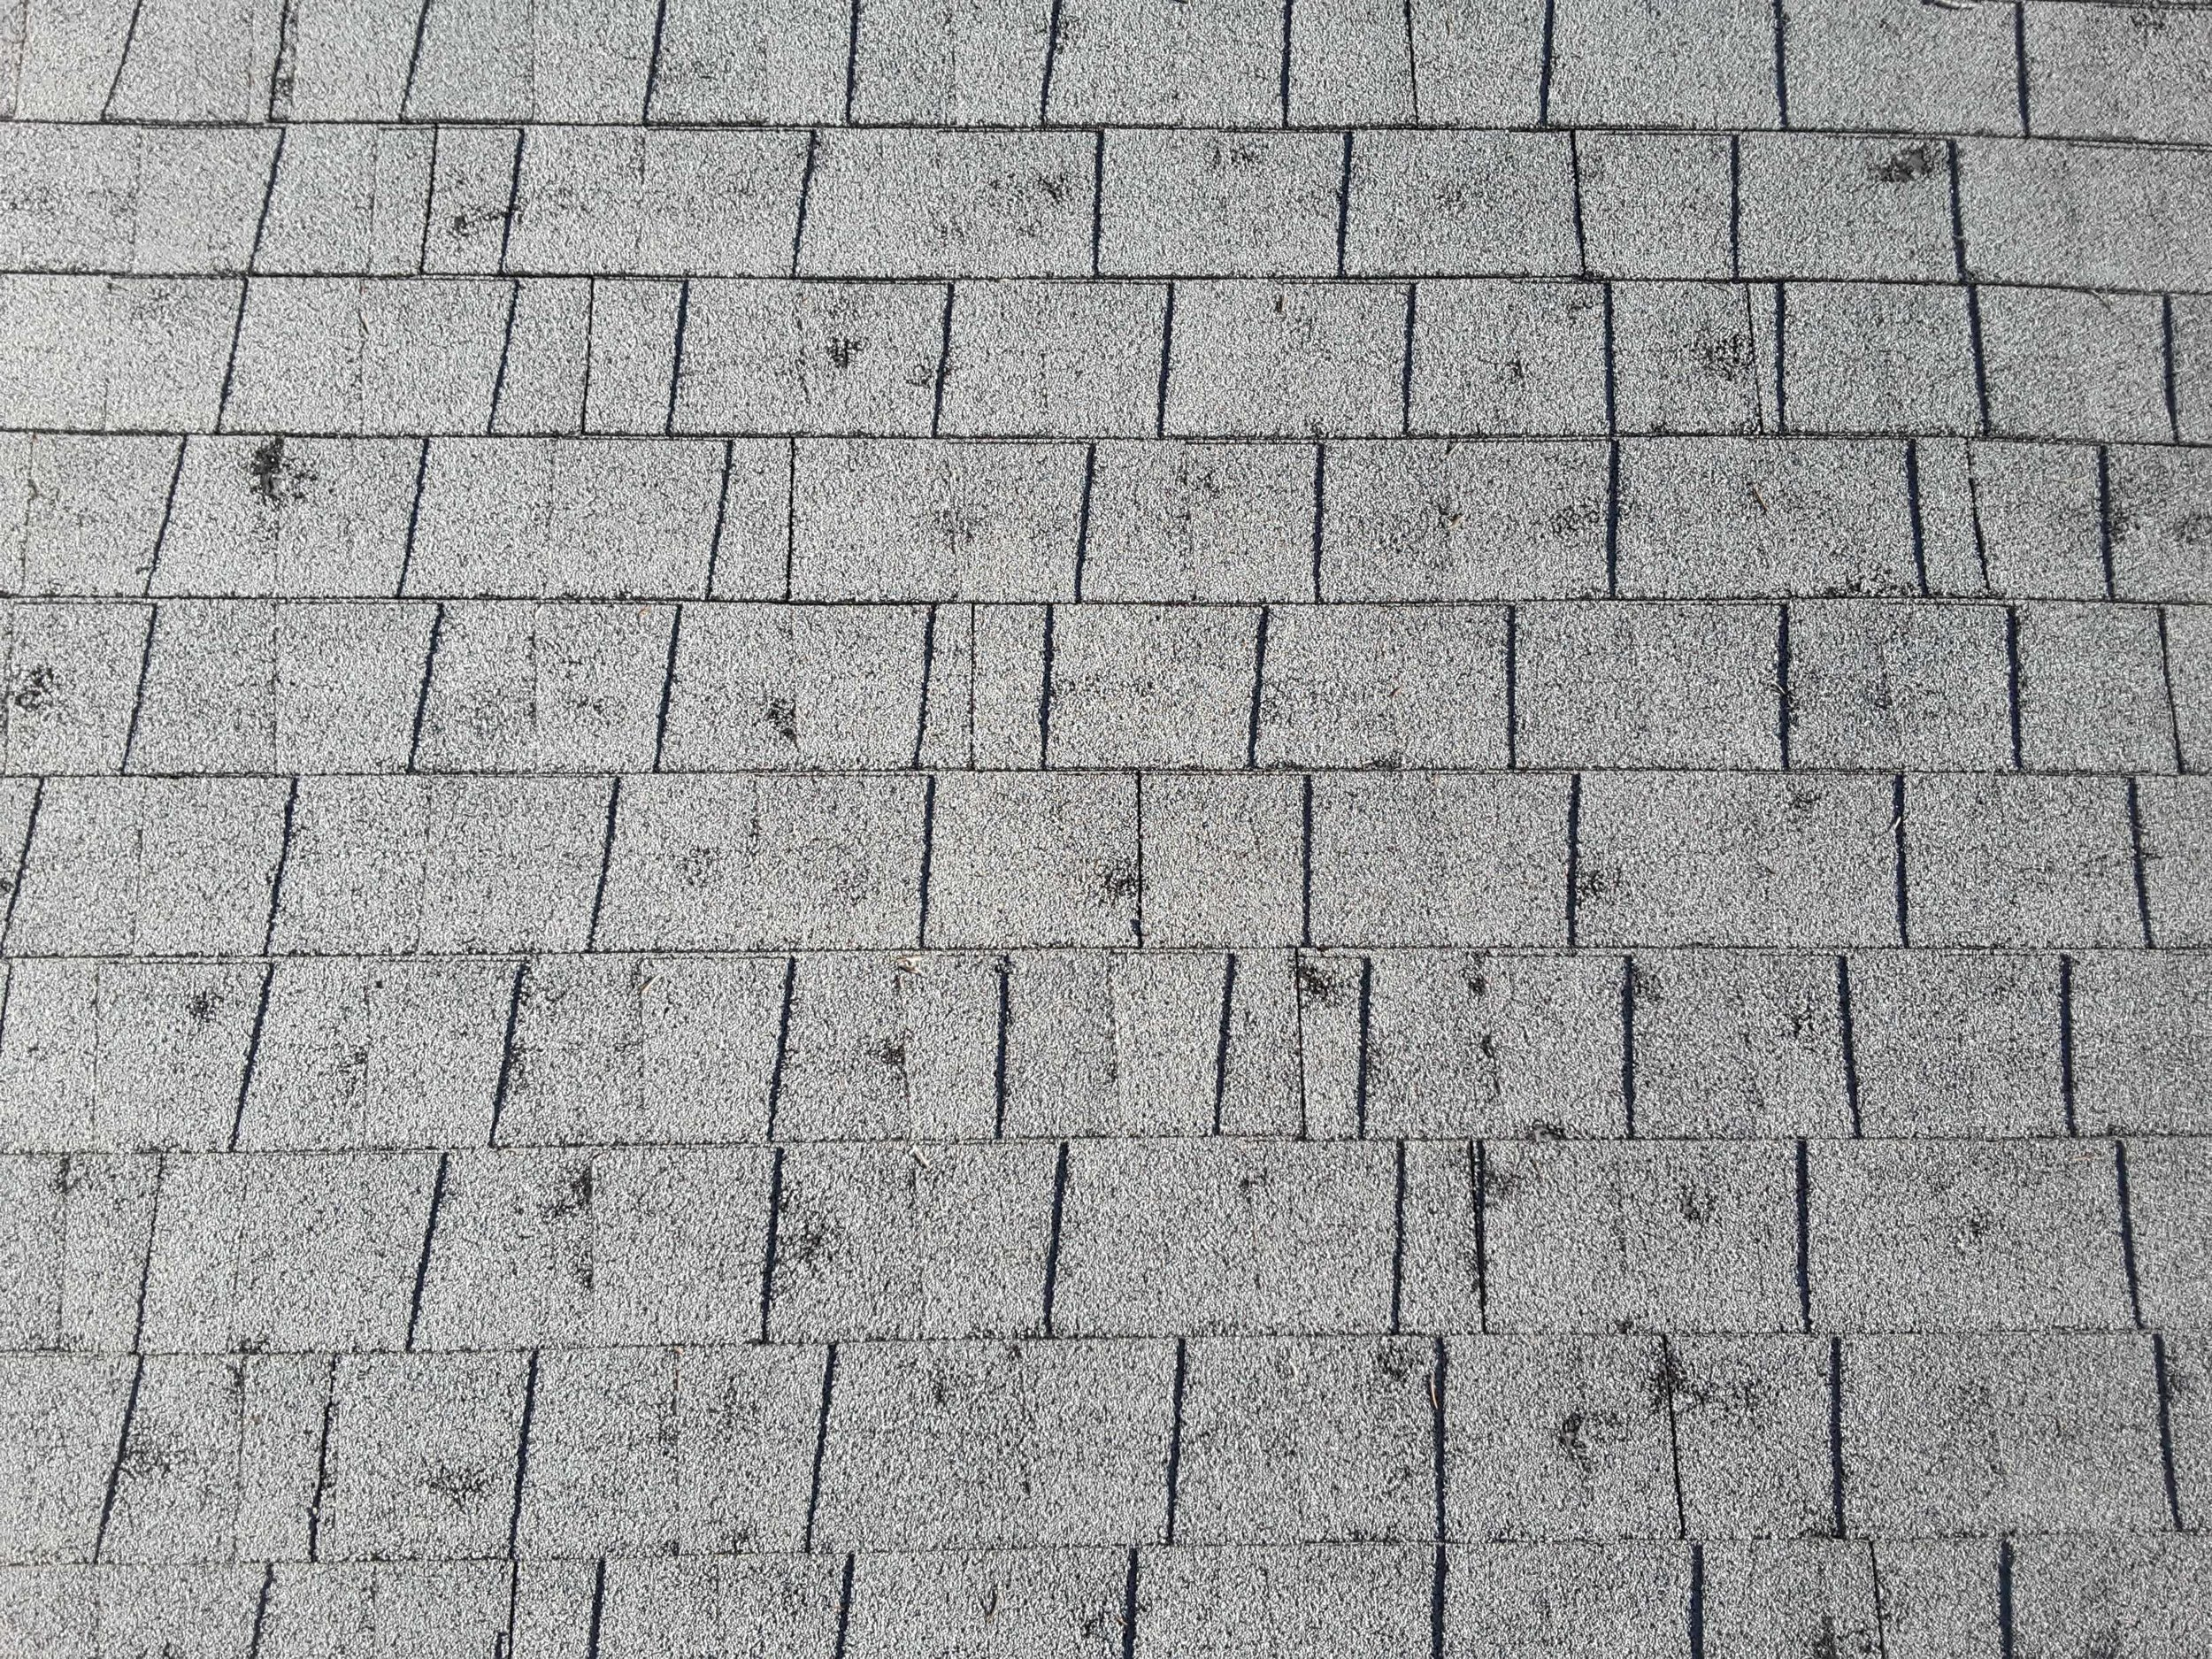 Hail causes up to 10 billion dollars a year in damages. This roof is still functioning, but will have a reduced lifespan.